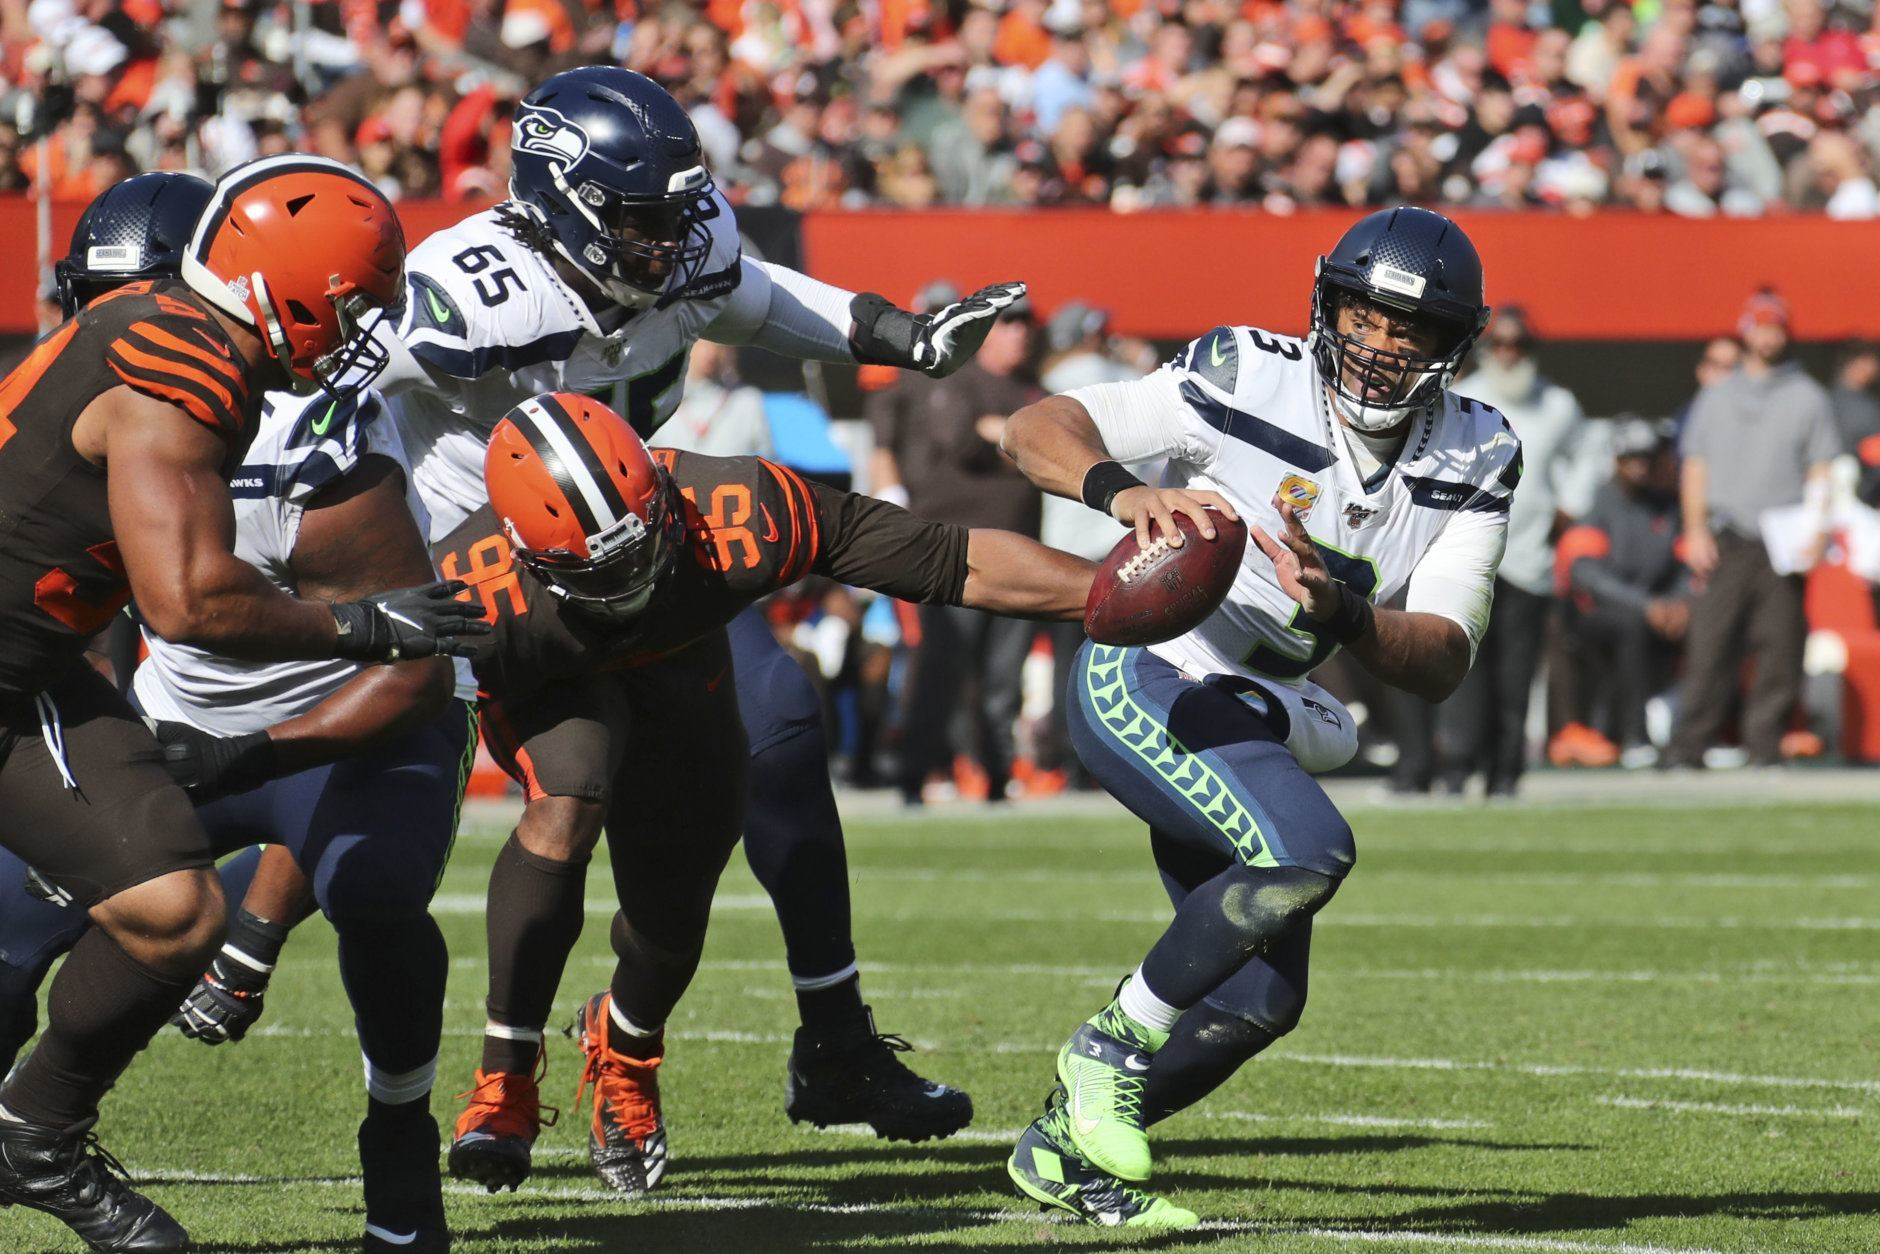 "<p><b><i>Seahawks 32</i></b><br /> <b><i>Browns 28</i></b></p> <p>Ohio-native Russell Wilson&#8217;s first game in Cleveland went a helluva lot better than any of the three Baker Mayfield has played there this season. The Browns are 2-4, including an 0-3 start at home, and it&#8217;s starting to look like this team is closer to <a href=""https://riggosrag.com/2019/06/27/redskins-2000-super-team-not/"" target=""_blank"" rel=""noopener"" data-saferedirecturl=""https://www.google.com/url?q=https://riggosrag.com/2019/06/27/redskins-2000-super-team-not/&amp;source=gmail&amp;ust=1571101182805000&amp;usg=AFQjCNGCUPsk5Lz2IlxFnGsPkqs6MQycxA"">the Fortune .500 Redskins</a> than anything resembling their preseason hype.</p>"